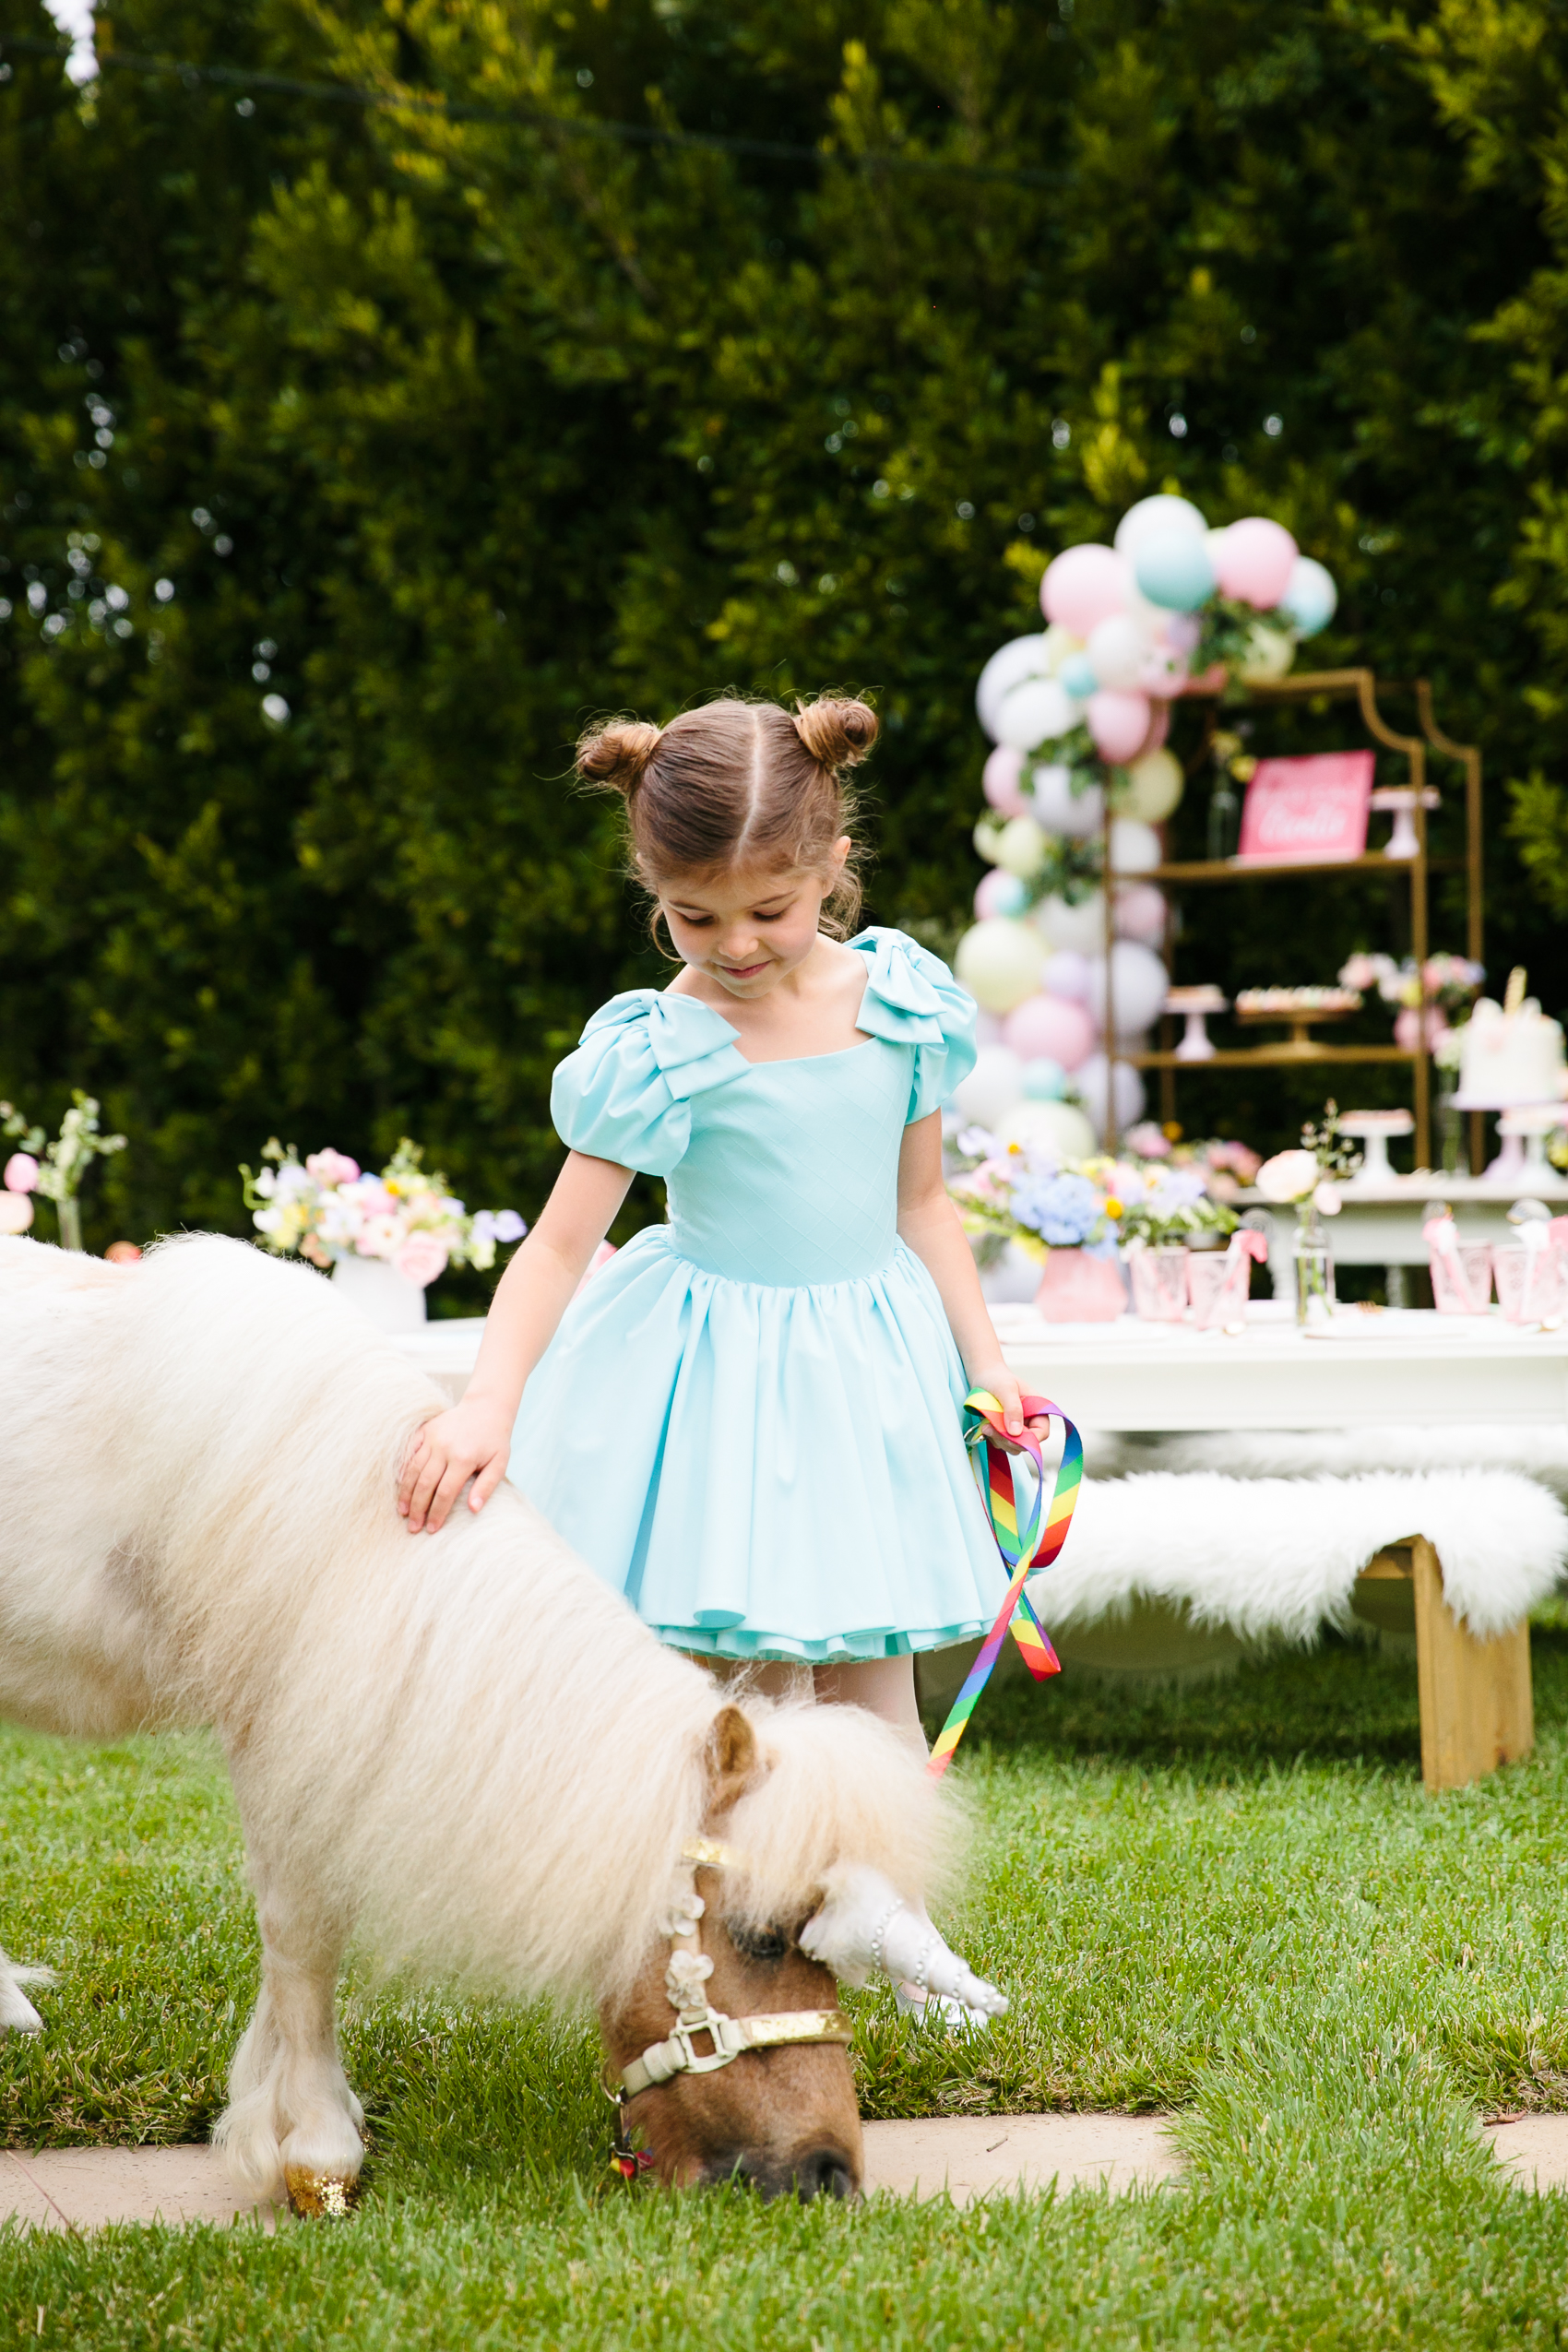 Los_Angeles_Family_Photographer_Luxury_Childrens_Party_Beverly_Hills_Unicorn_Birthday_Party-0249.jpg